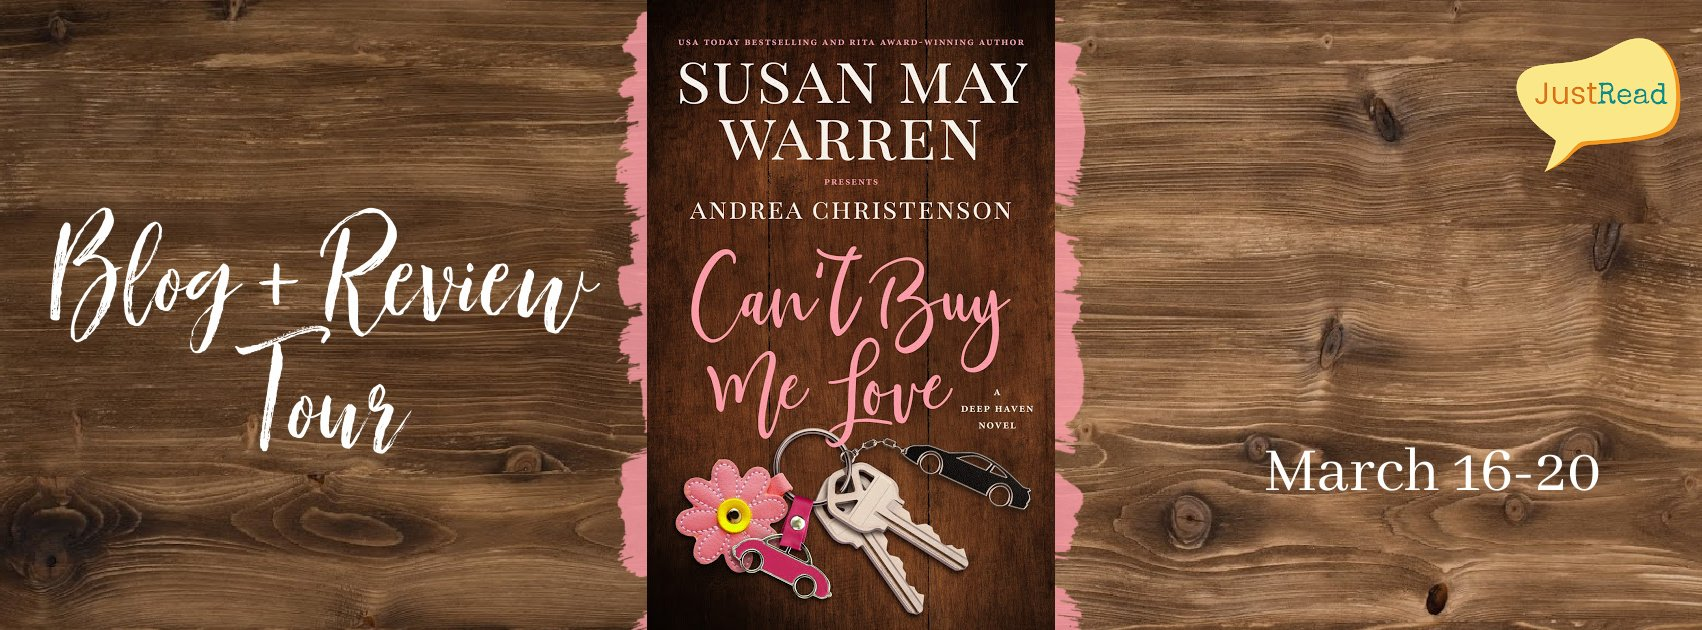 Can't Buy Me Love JustRead Blog + Review Tour